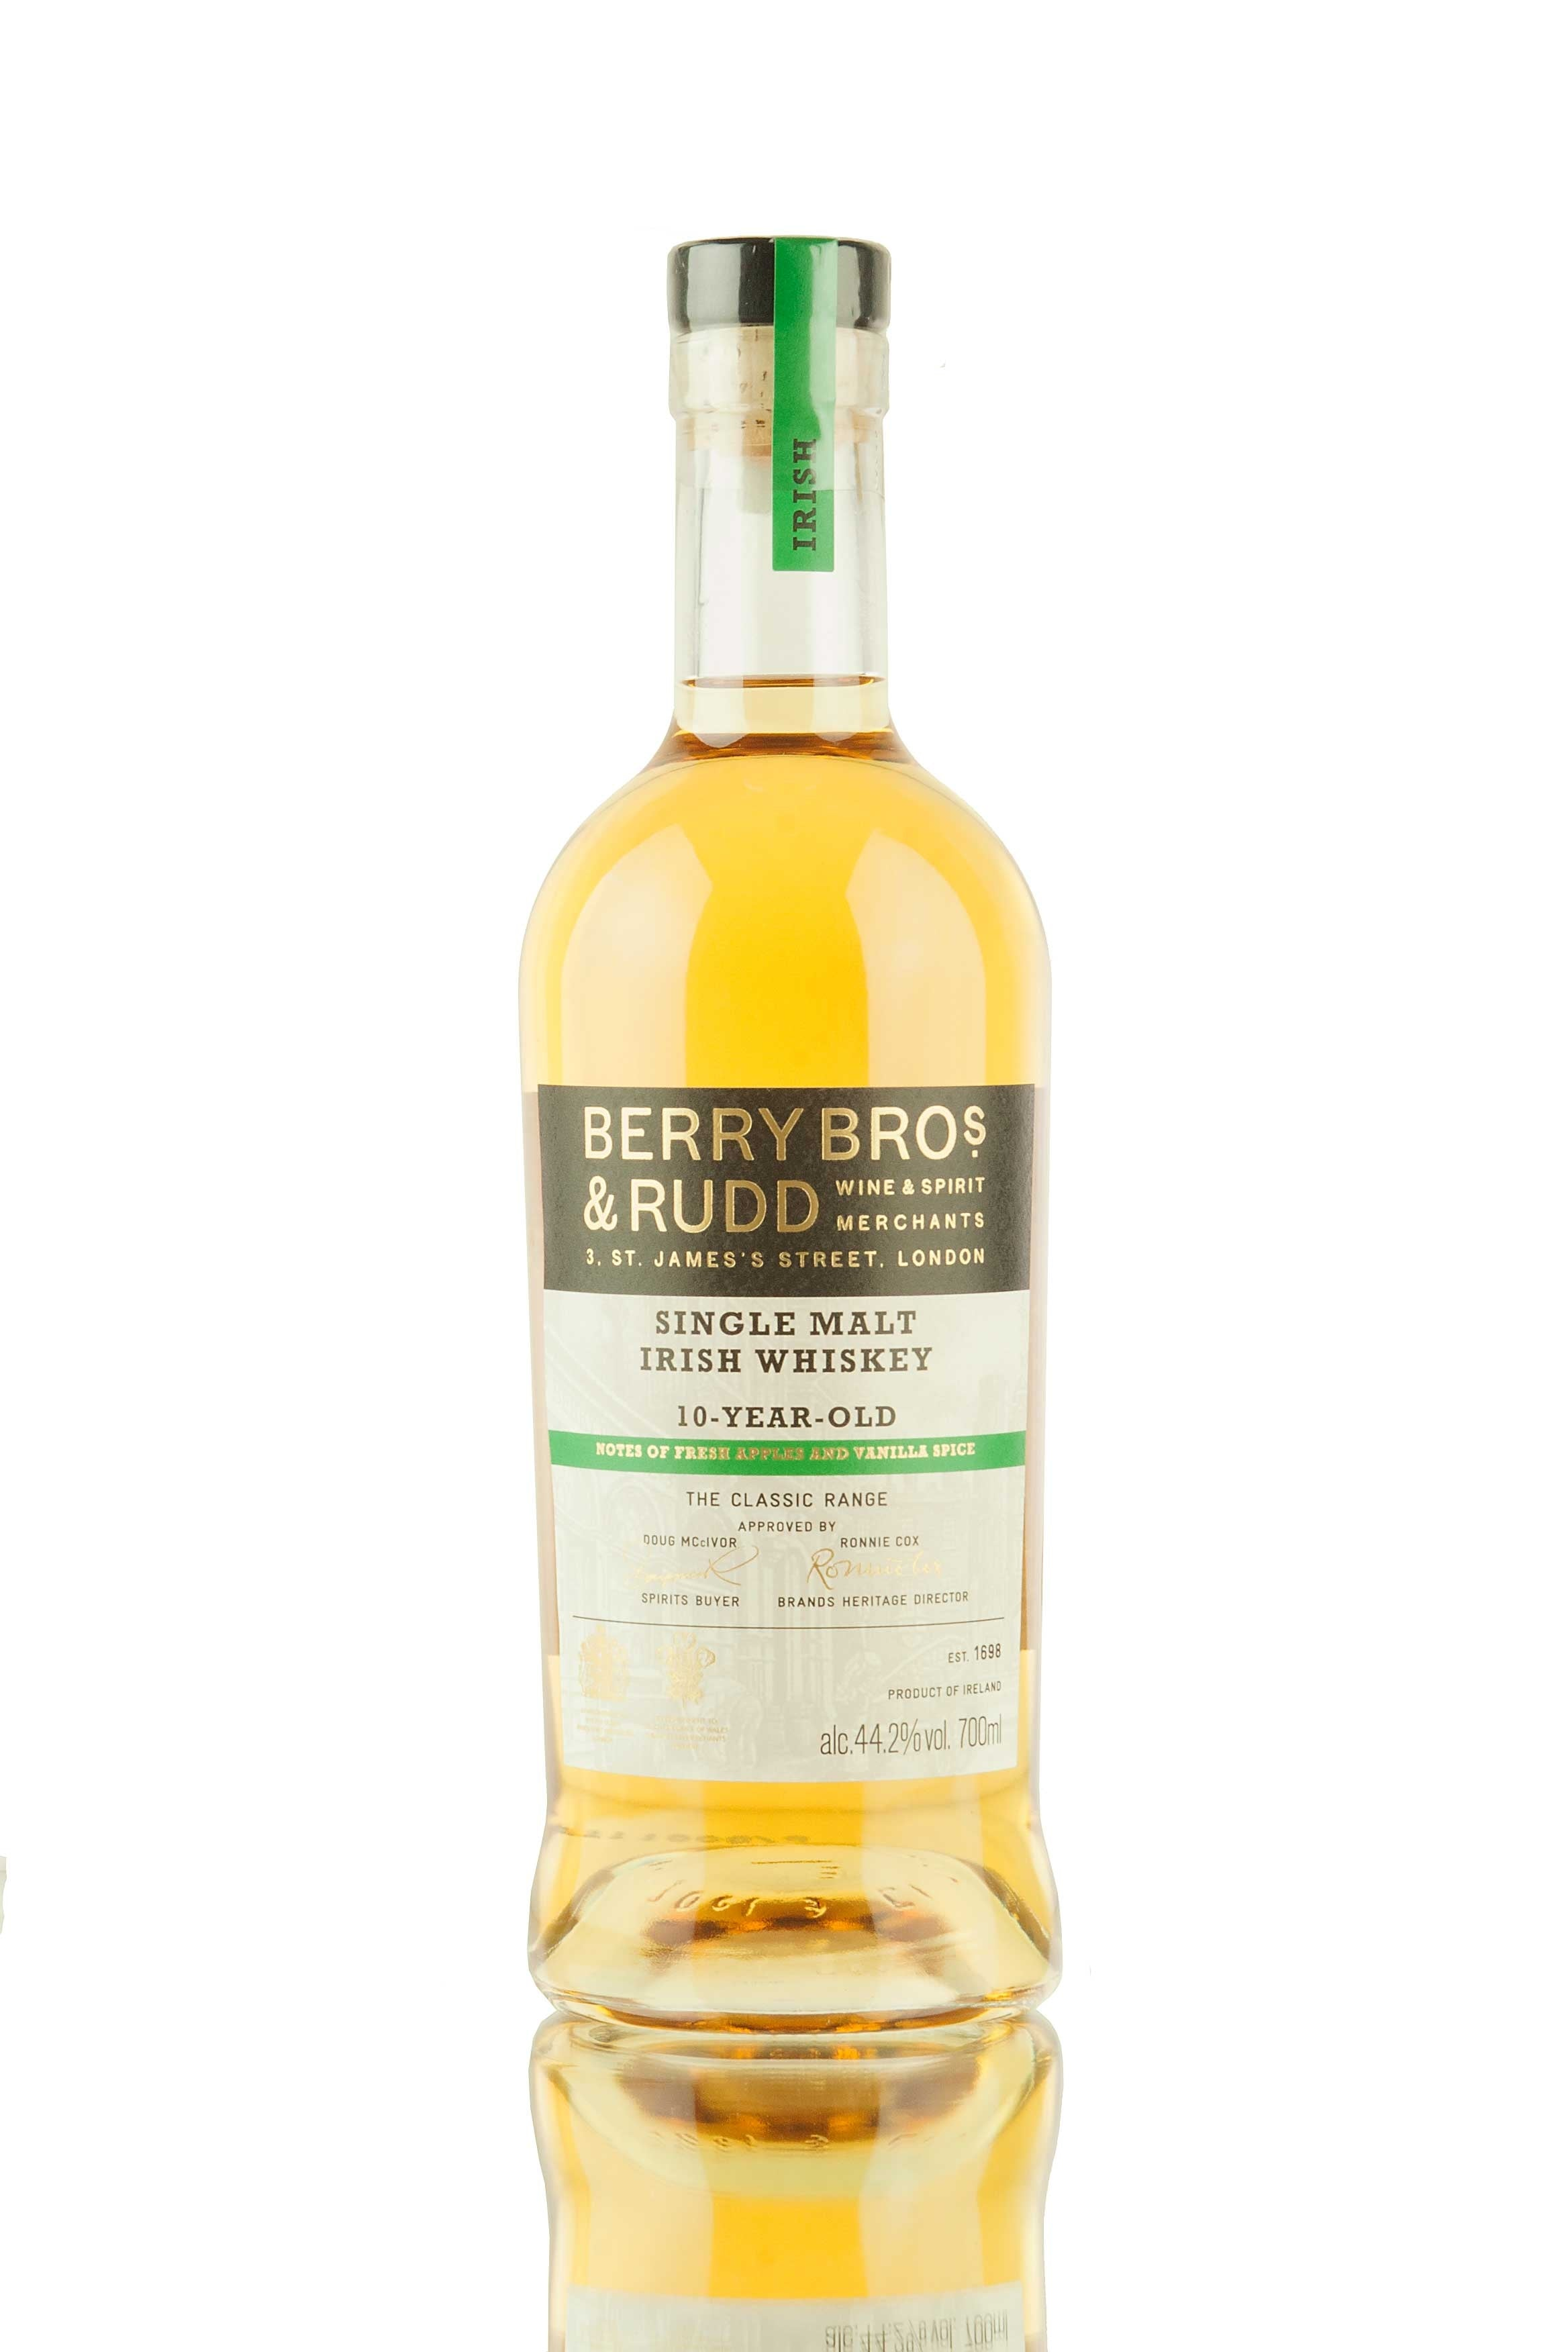 Berry Bros & Rudd The Classic Range Irish Whiskey